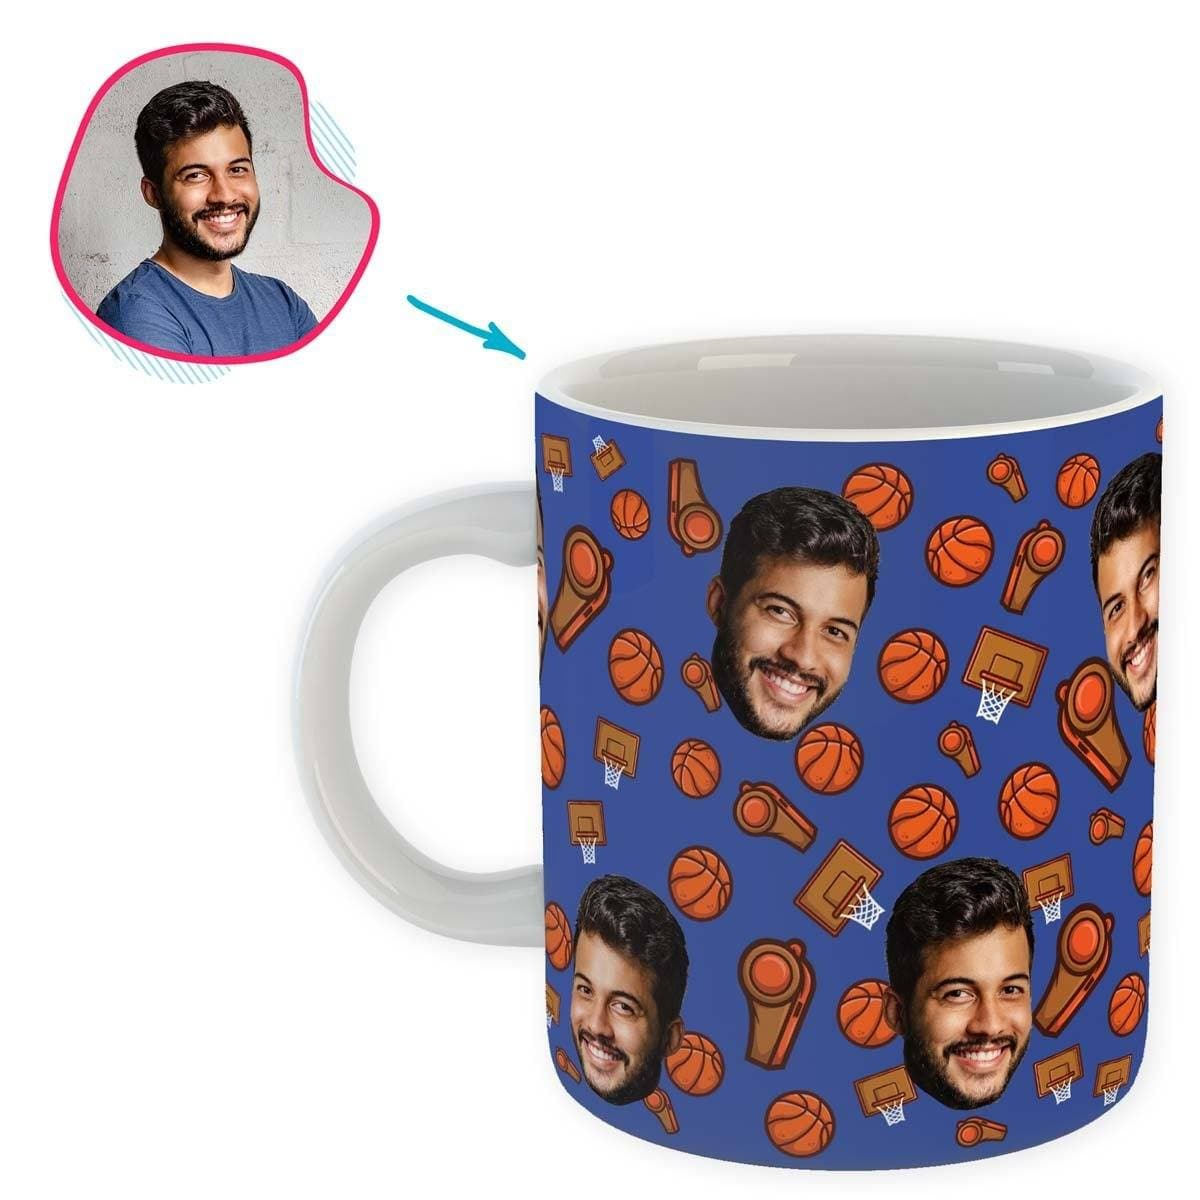 darkblue Basketball mug personalized with photo of face printed on it